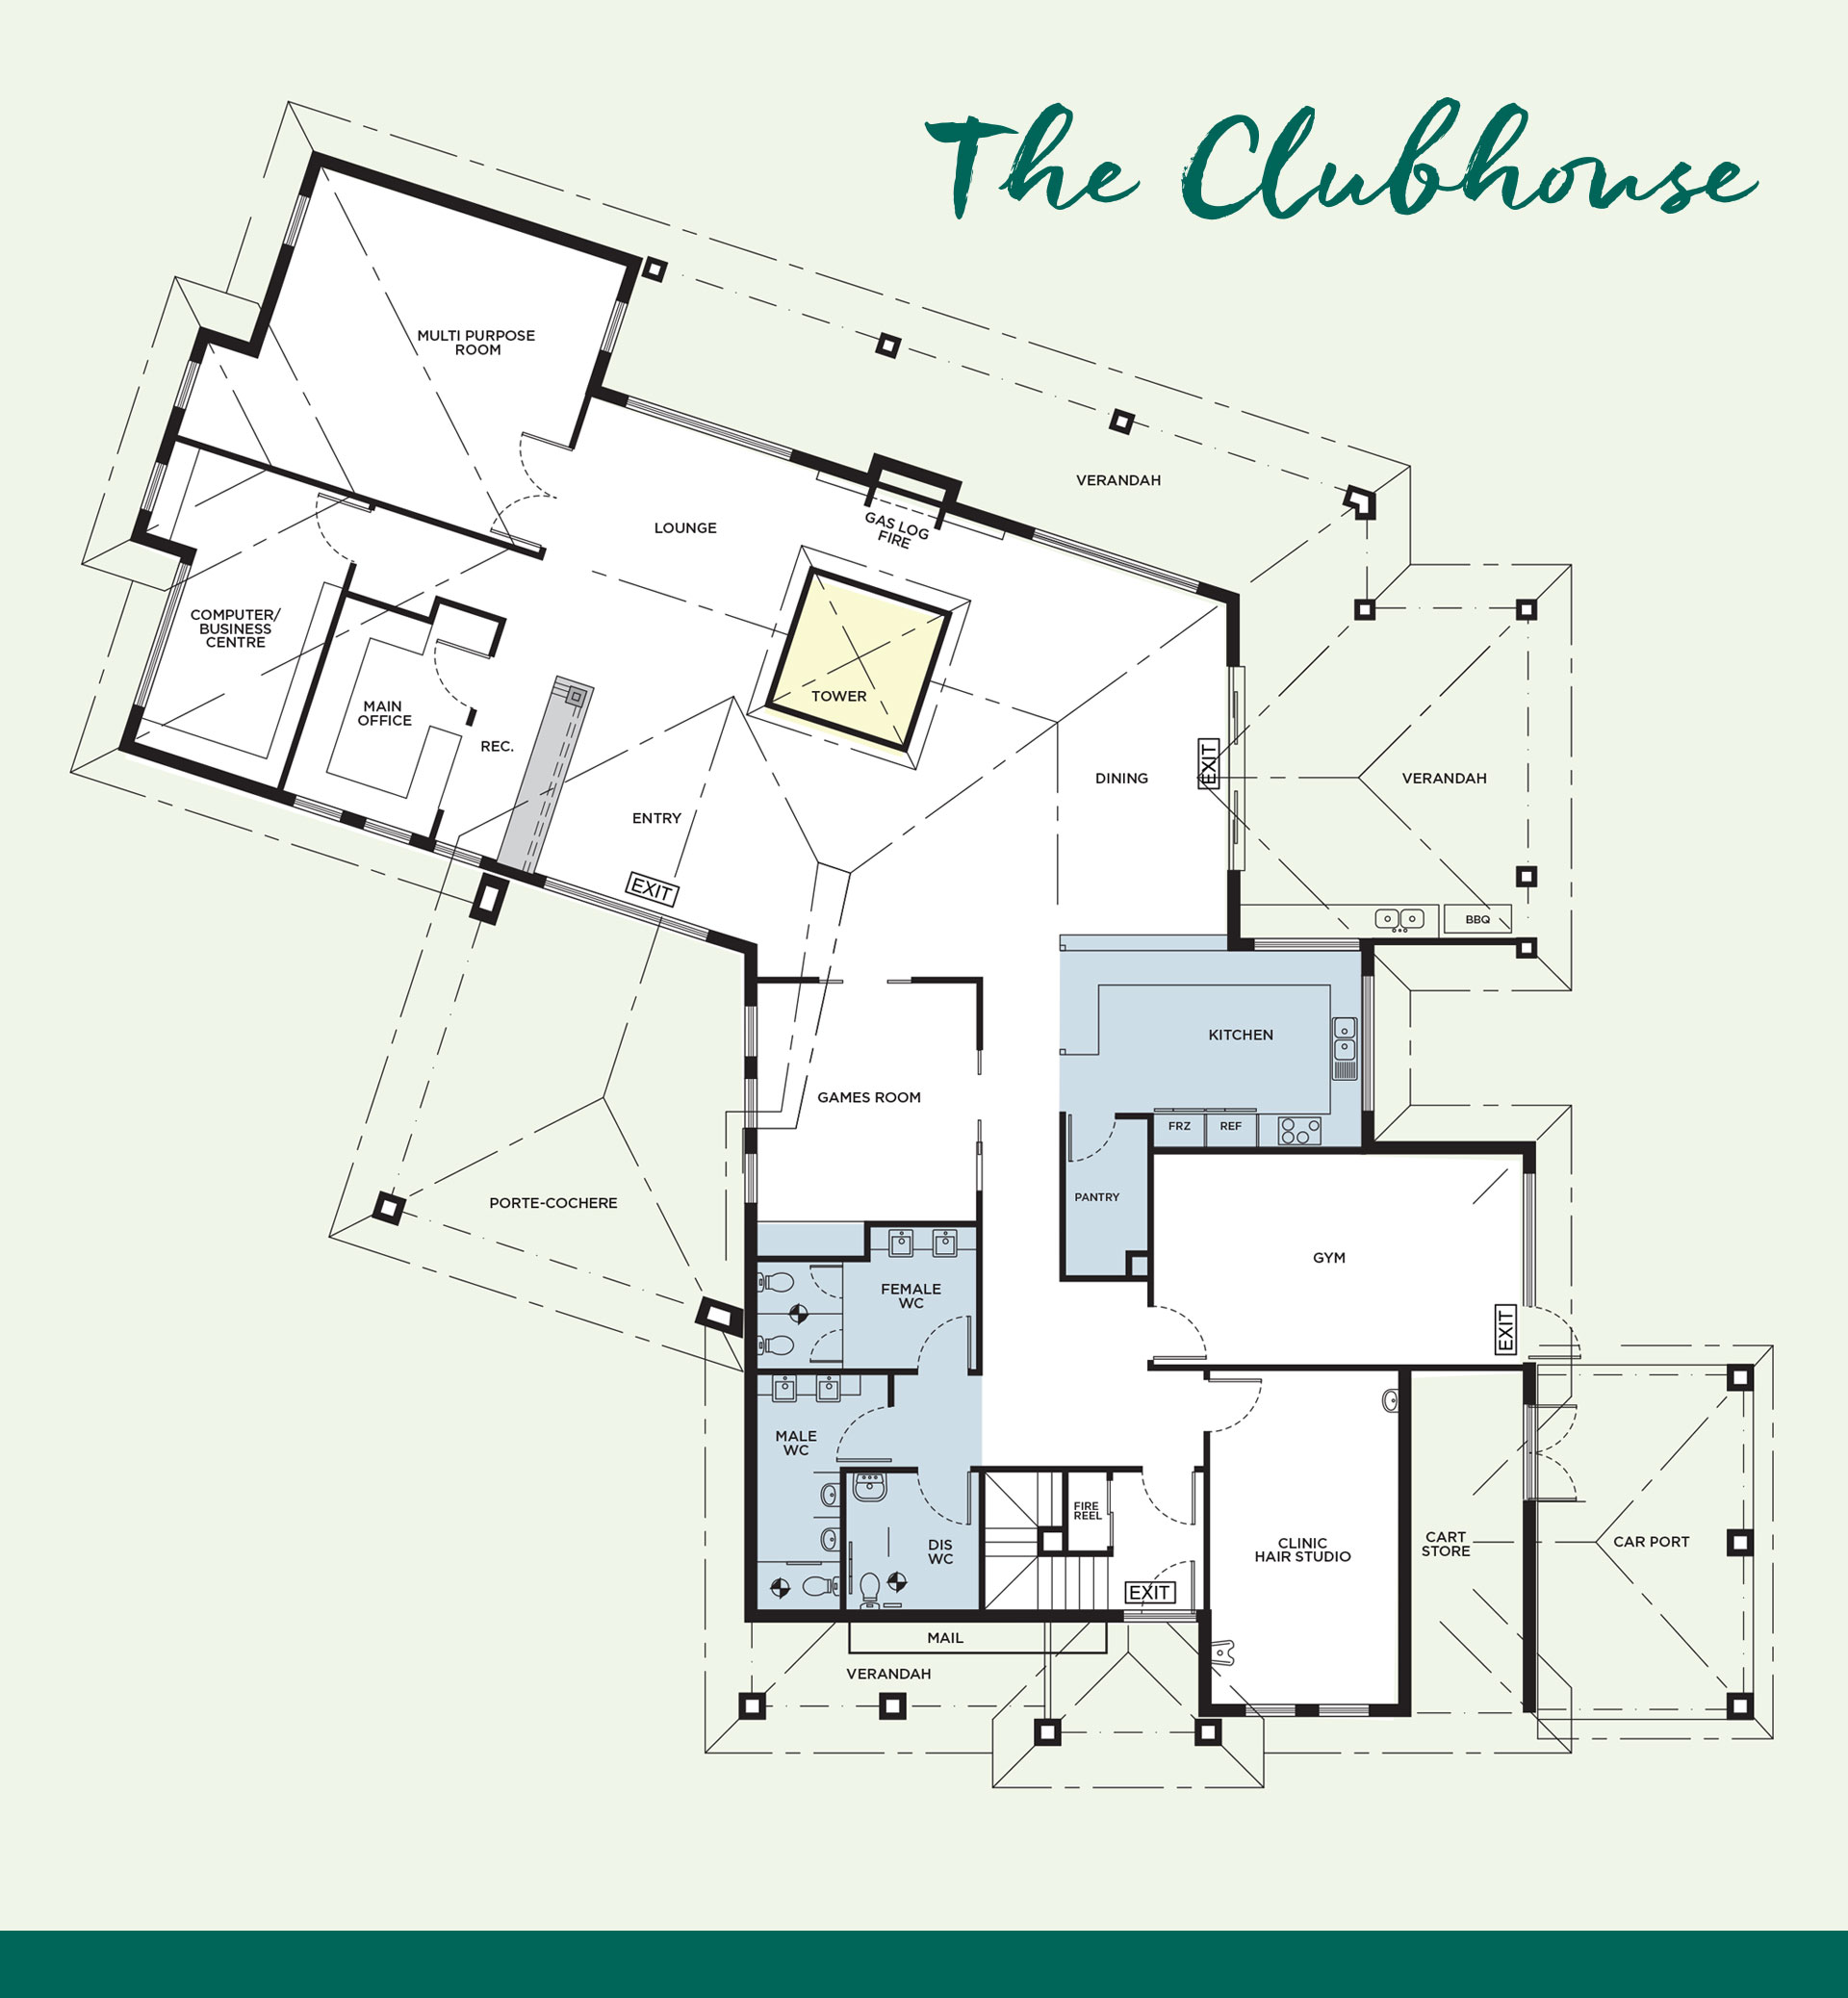 Club house 1920 pix floor plan master peninsula House layout plan